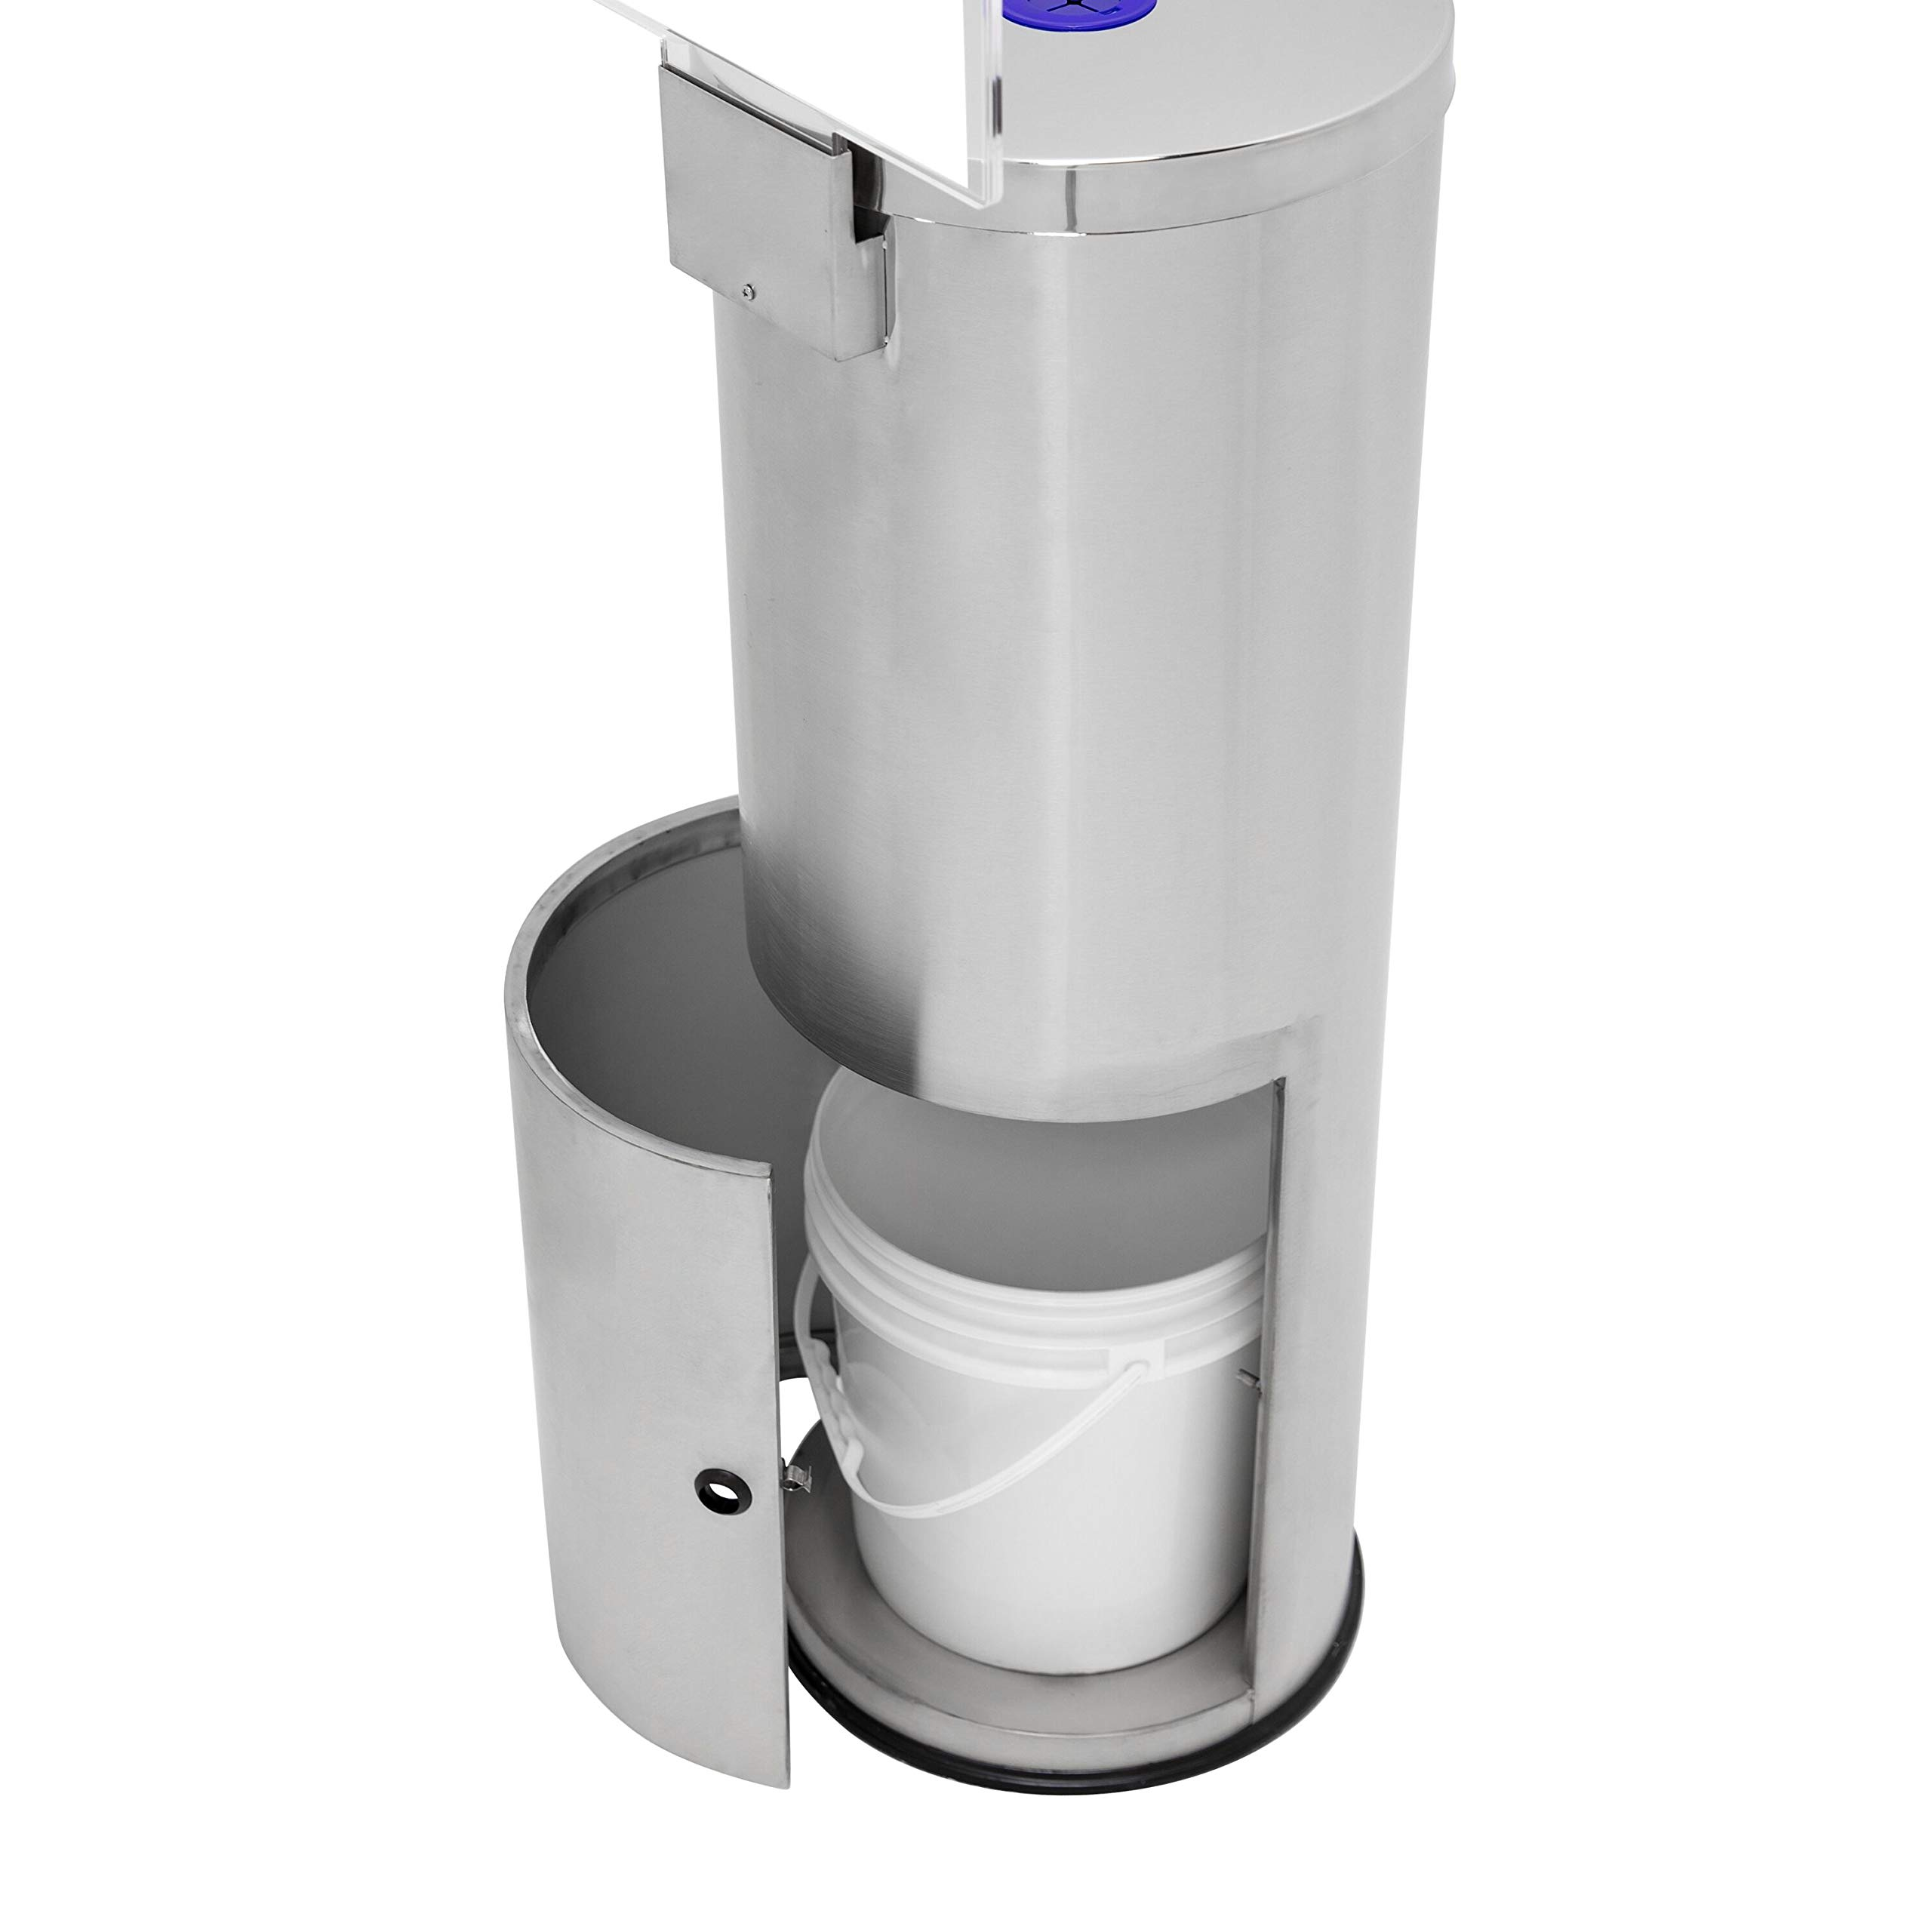 Germisept Stainless Steel Wipes Dispenser with High Capacity Built-in Trash Can and Back Door Access, with Sign Board by GERMISEPT (Image #5)